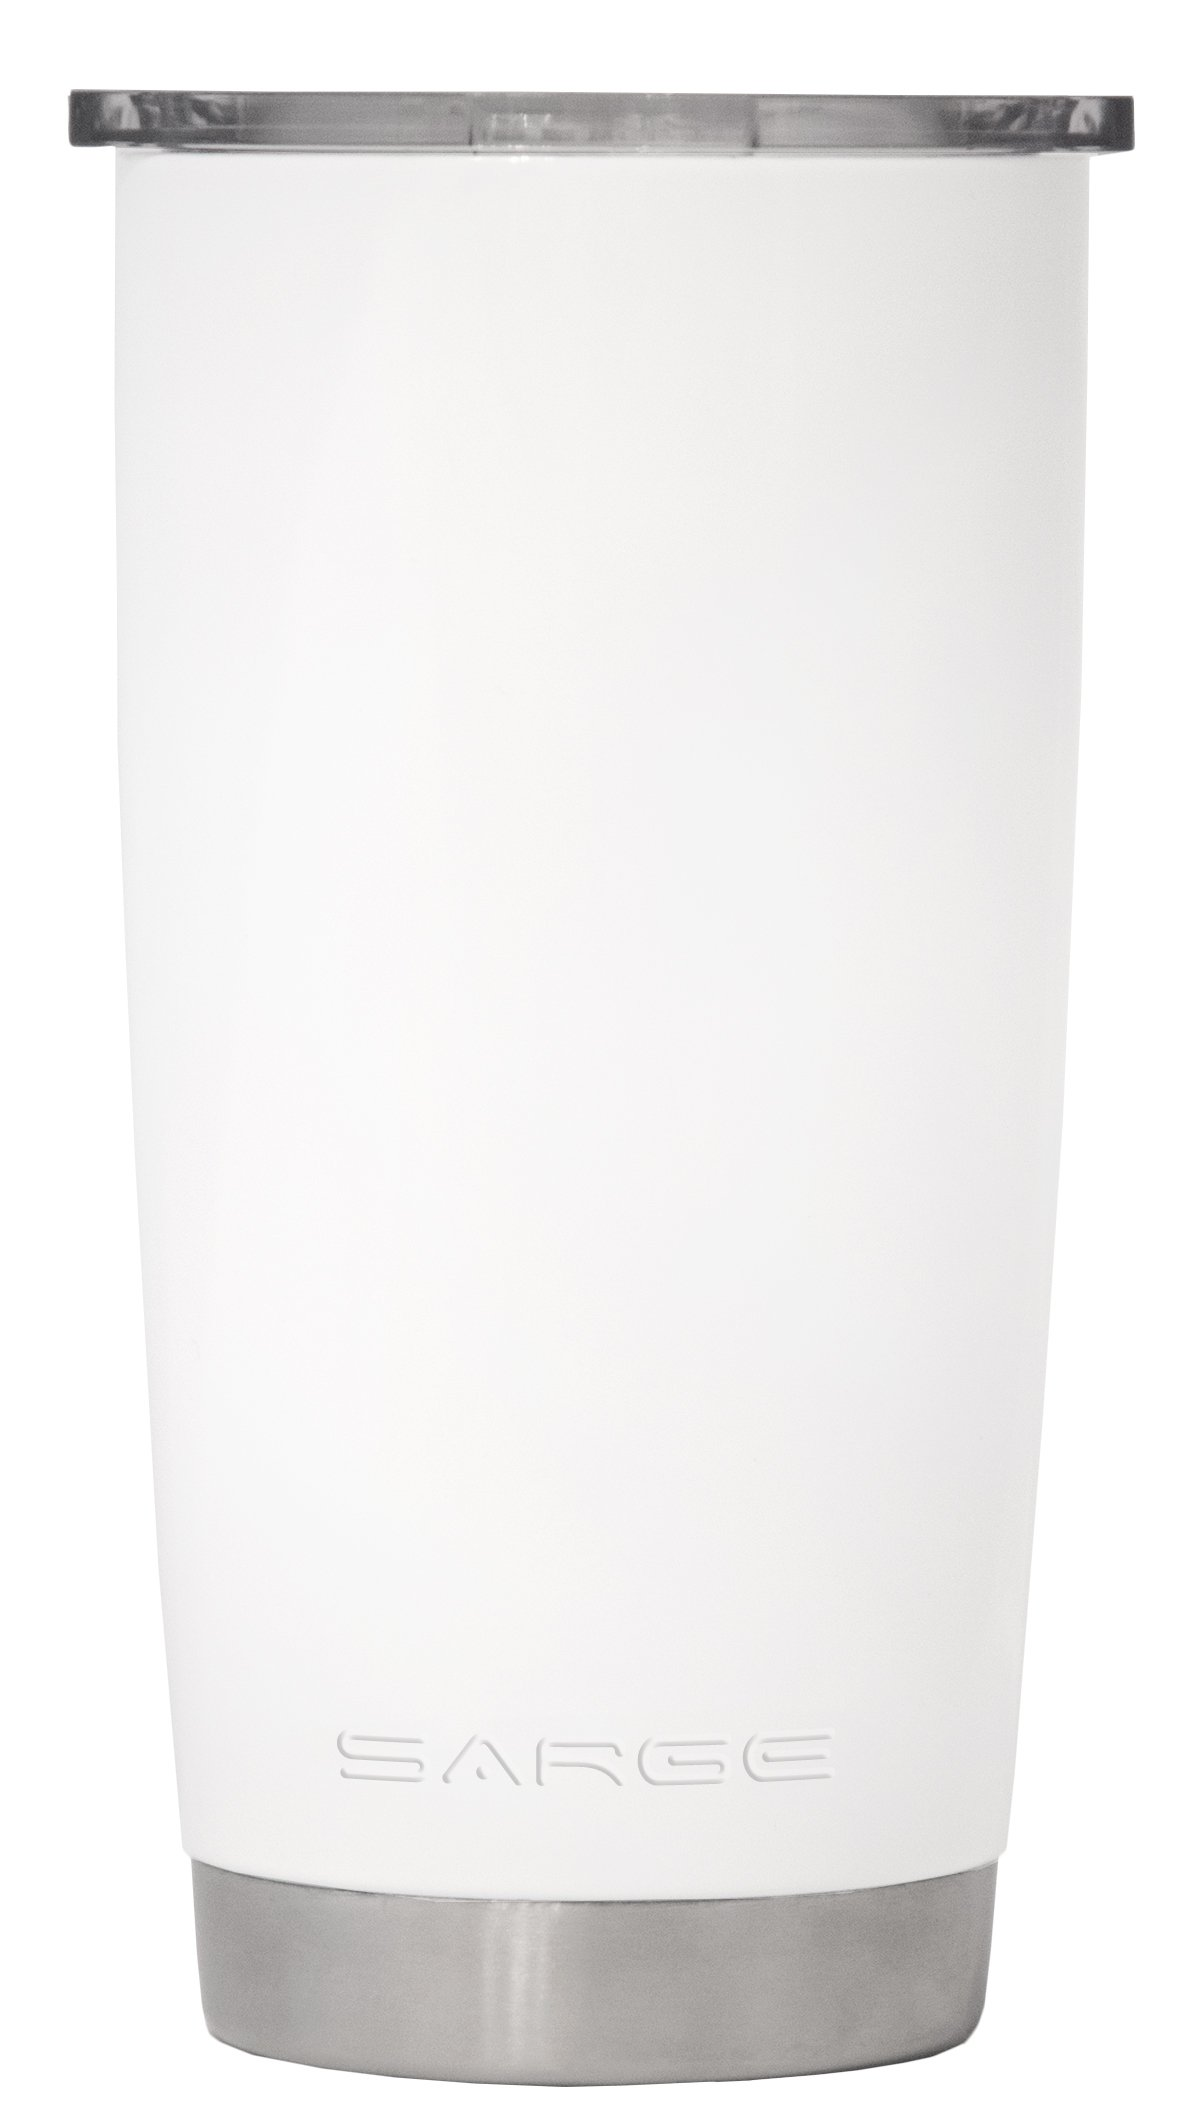 Sarge Knives DC-20WH 20 oz Stainless steel Tumbler with Shatterproof Lid and White Desert Cup